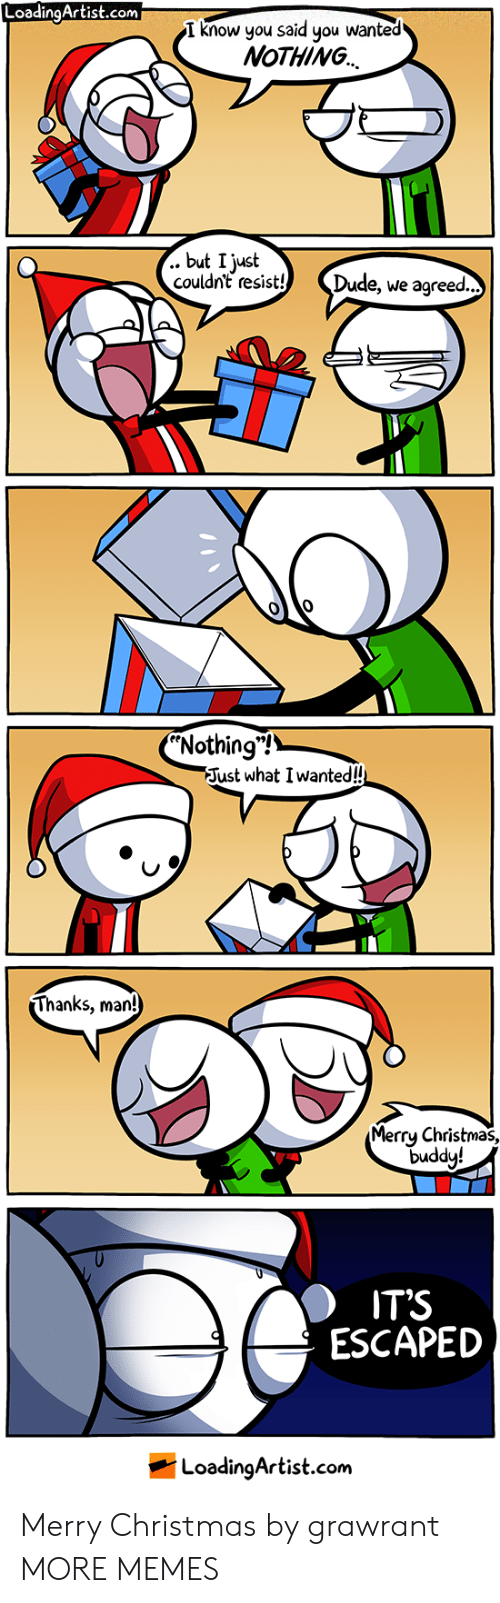 "Thanks Man: LoadingArtist.com  I know you said you wanted  NoTHING  .. but I just  couldn't resist! Dude, we agreed  Nothing""!  Just what I wanted!  Thanks, man!  Merrų Christmas,  duddy!  IT'S  ESCAPED  LoadingArtist.com Merry Christmas by grawrant MORE MEMES"